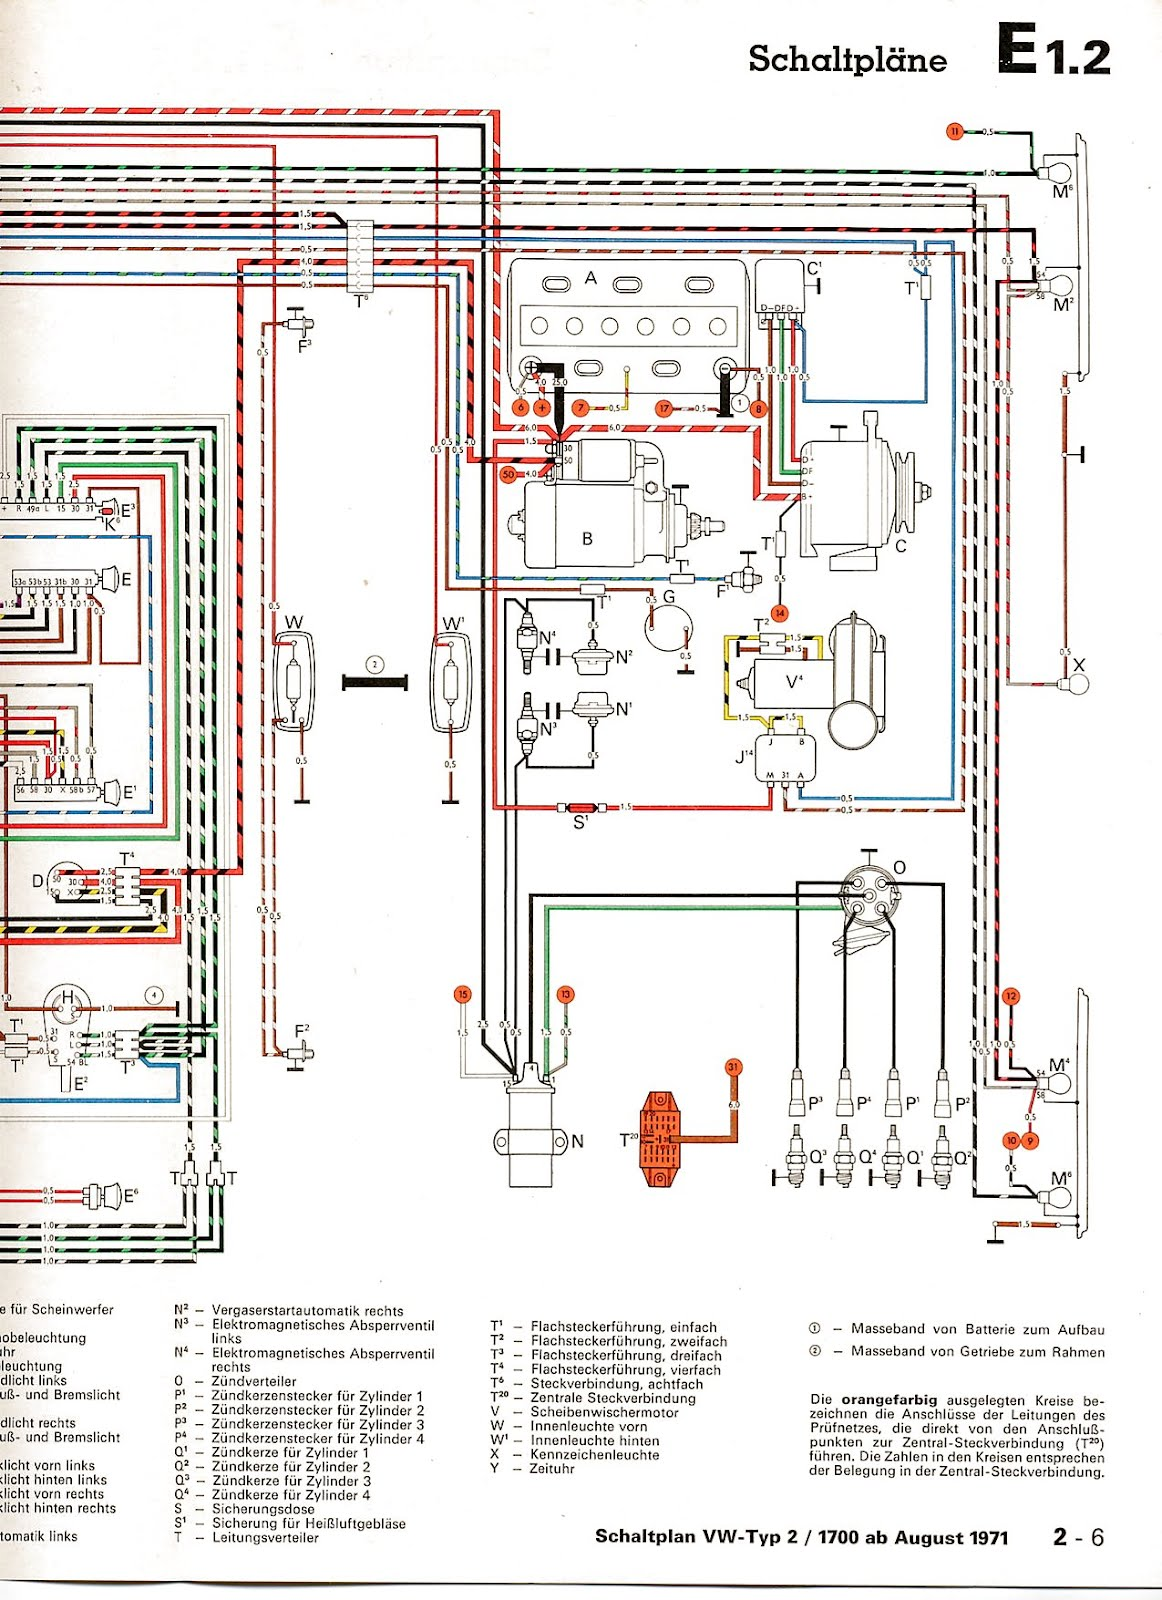 Chevy Diagrams Endear Chevelle Wiring Diagram Pdf further Bus as well Thesamba   Type Wiring Diagrams And Vw Beetle Diagram in addition Vw Beetle Fuse Box Automotive Wiring Diagrams Inside Vw Beetle Fuse Box moreover Wire. on 69 vw beetle wiring diagram